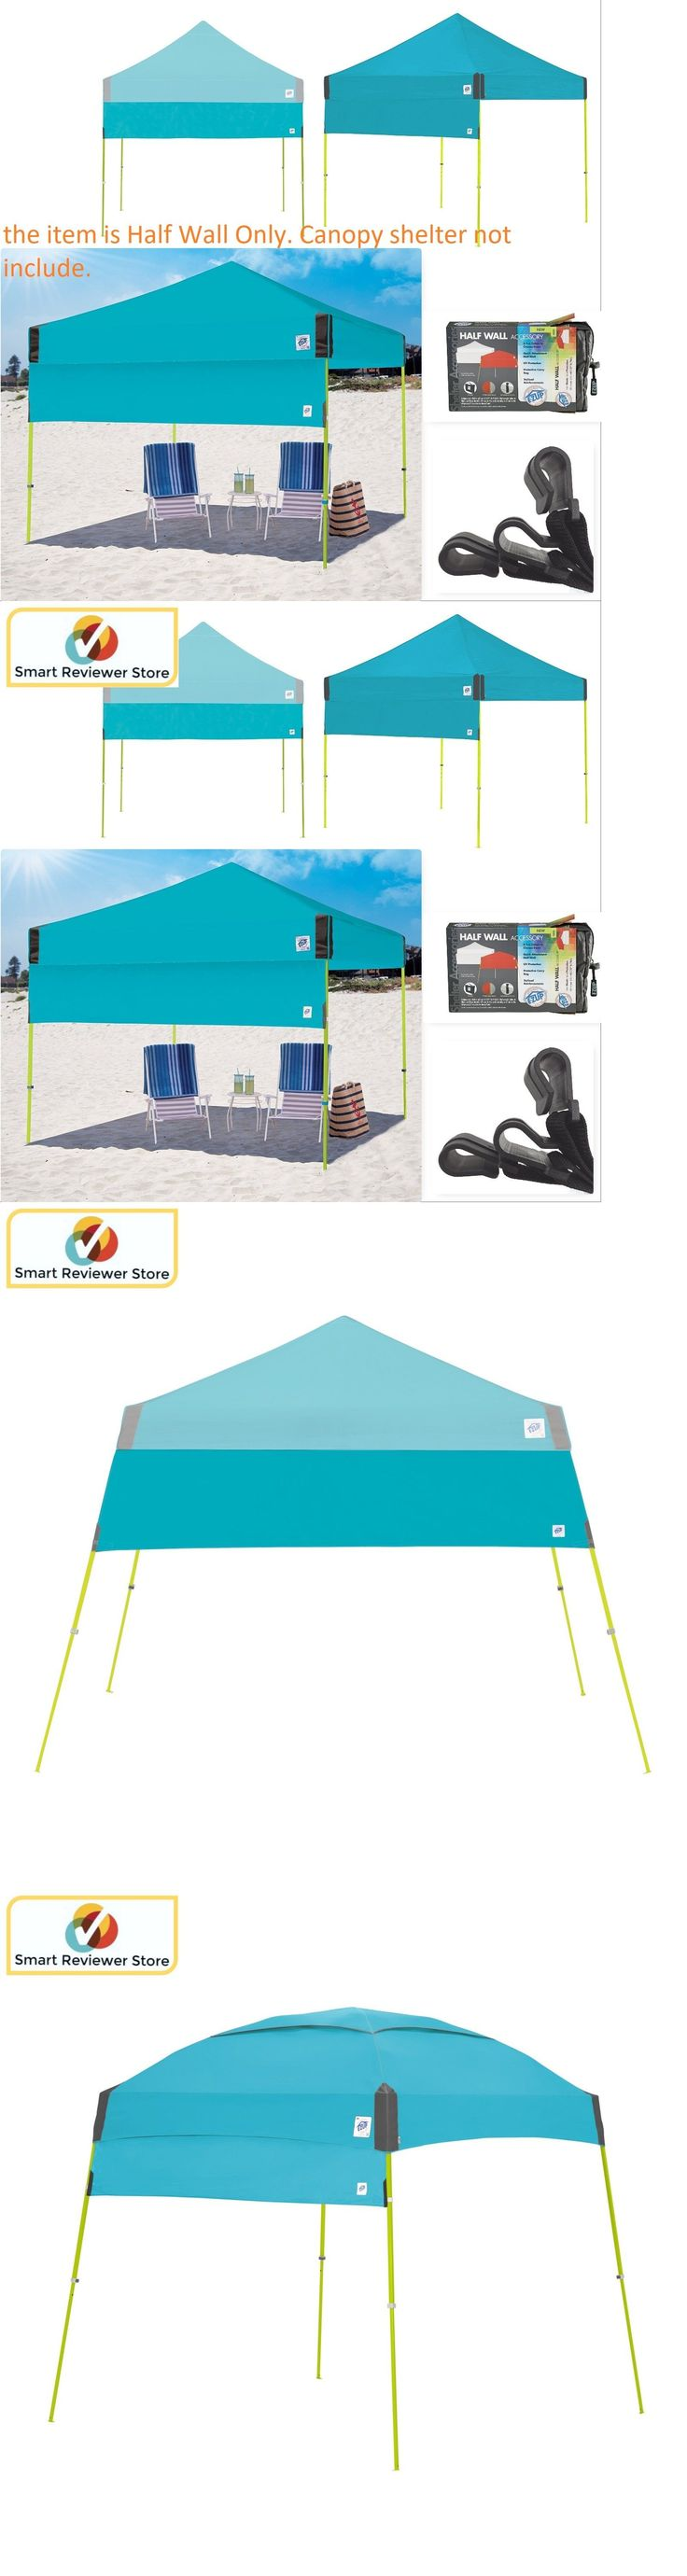 Canopies and Shelters 179011 Instant Canopy Tent 10X10 Half Wall Outdoor Pop Up Gazebo Patio  sc 1 st  Pinterest : ebay canopy tent - memphite.com